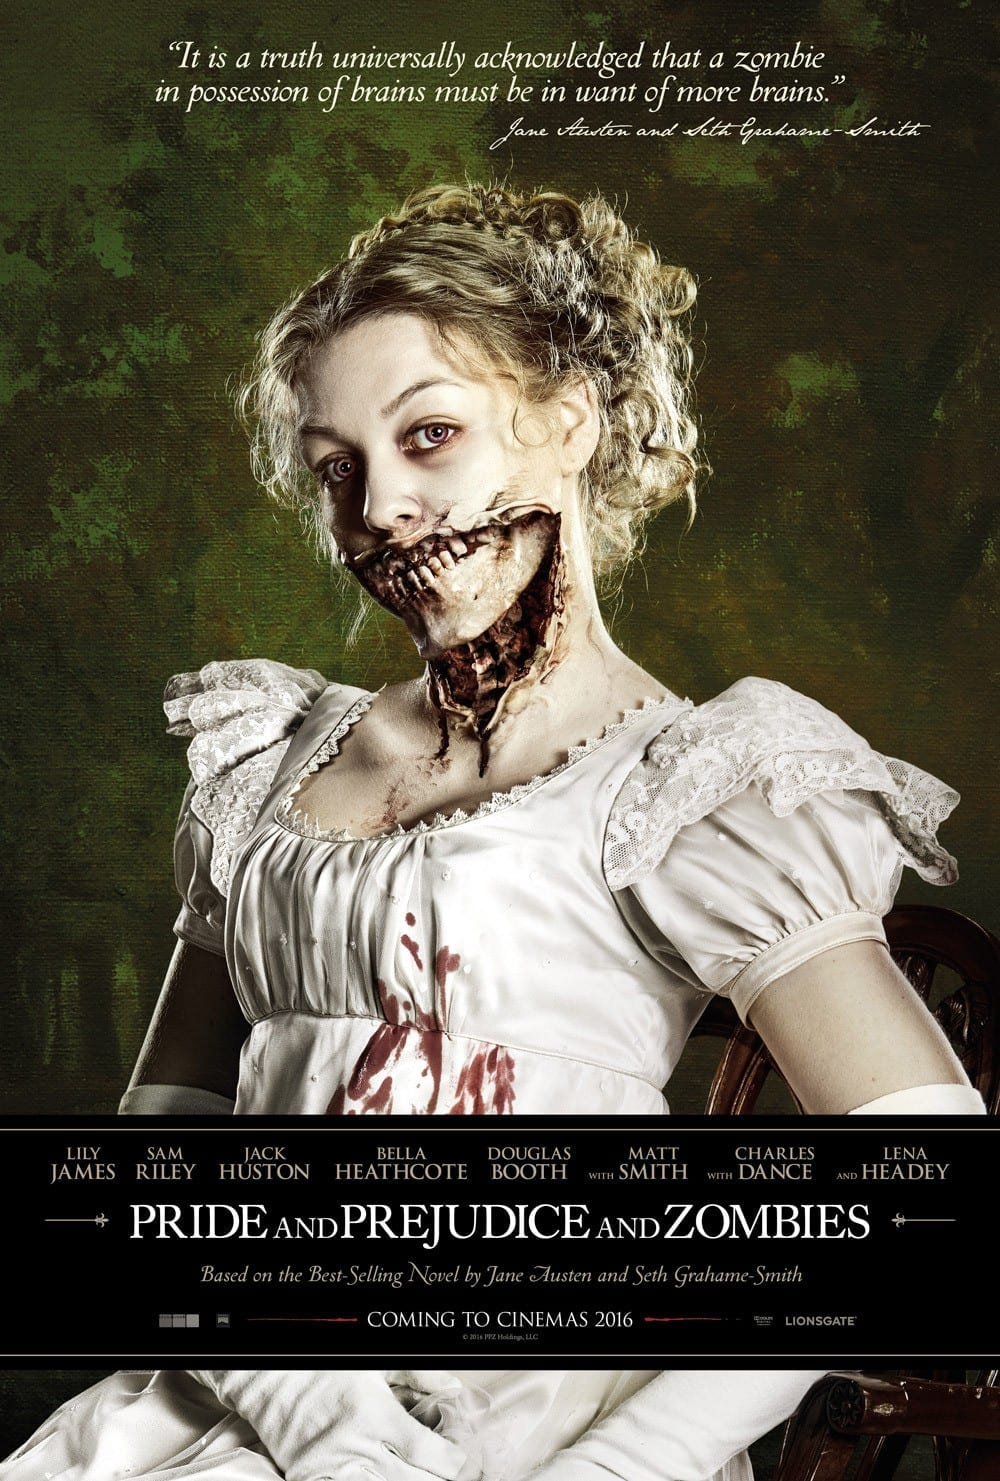 Official Trailer: Pride and prejudice and zombies